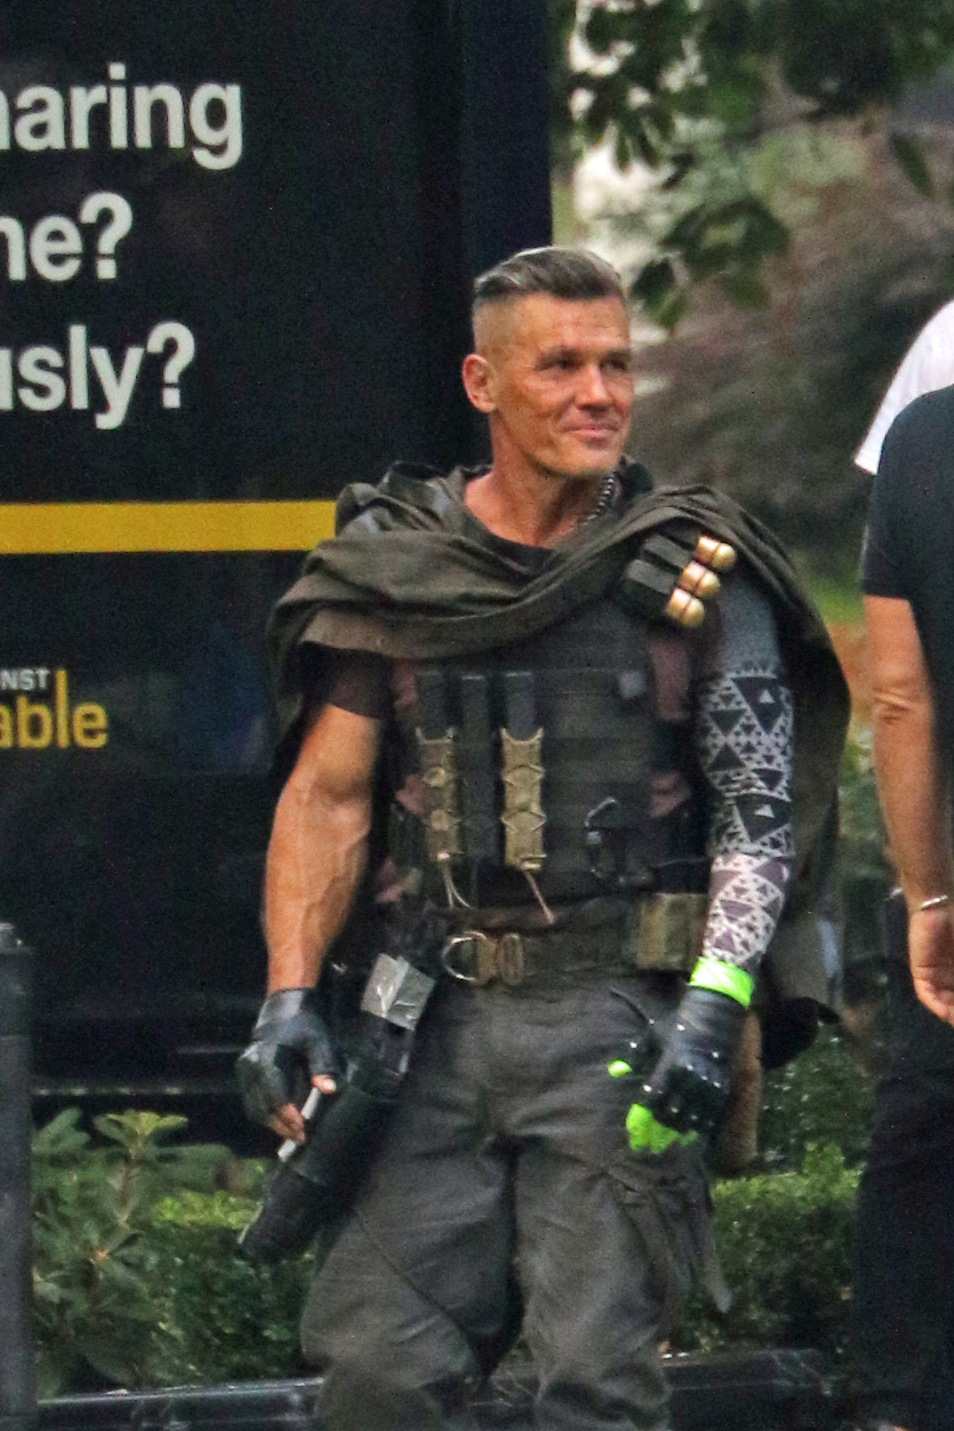 Josh Brolin on the set of Deadpool 2 in Vancouver (Ken R/Daily Hive)